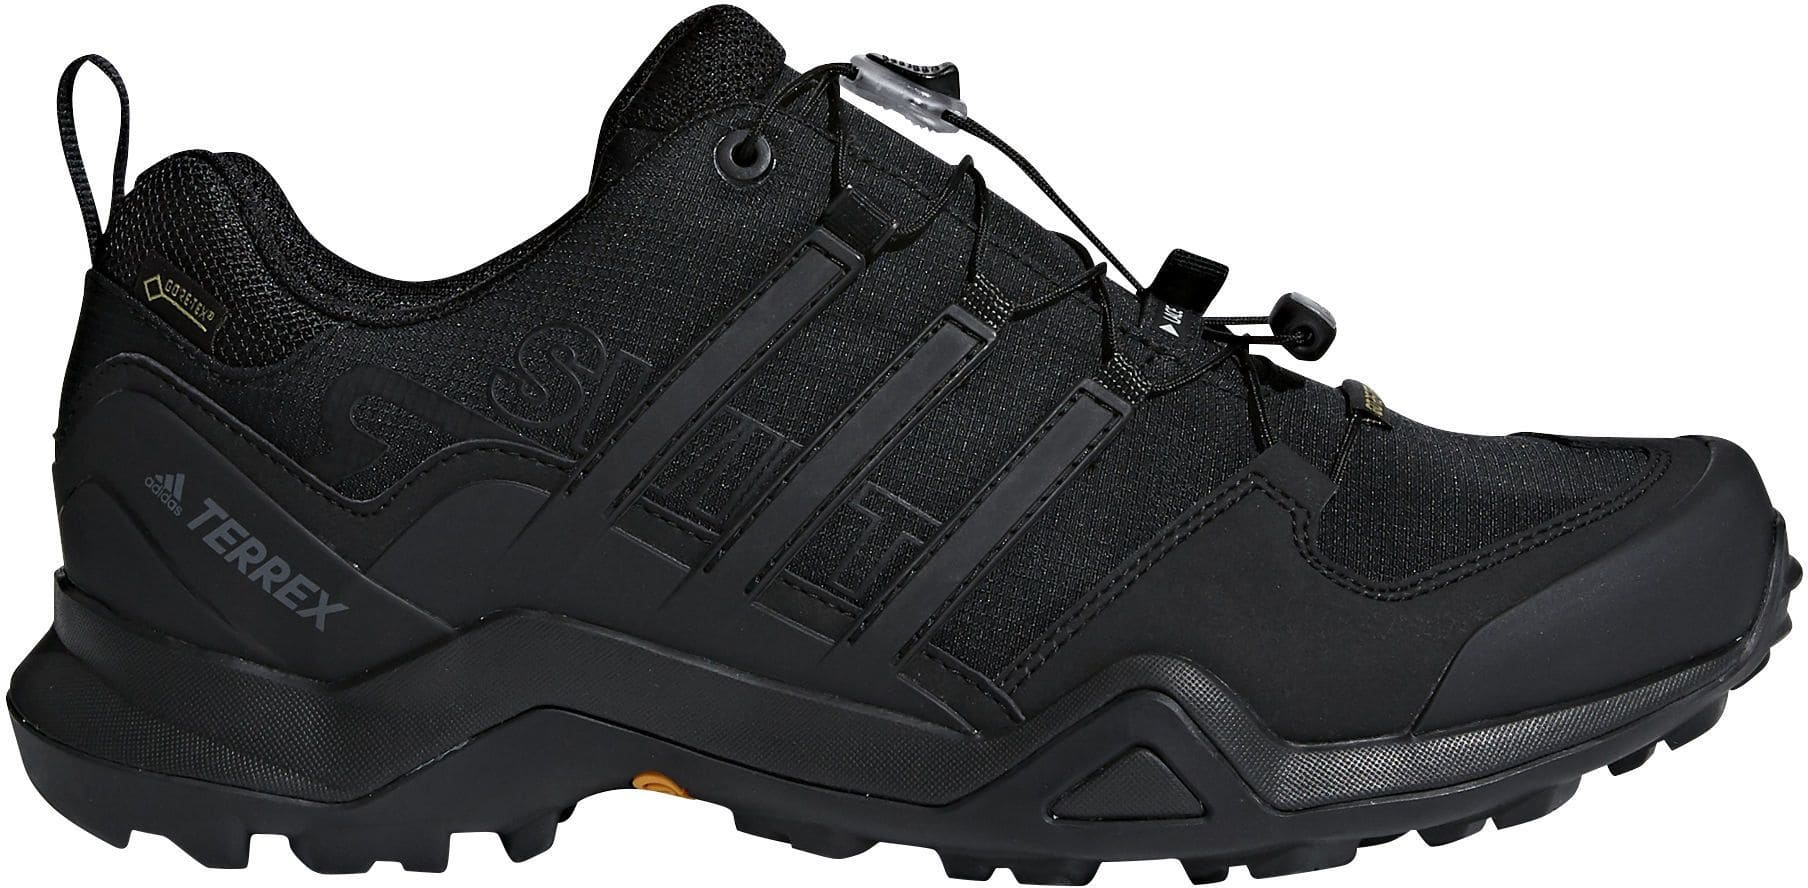 sports shoes 8c599 db185 Adidas Outdoor Mens Terrex Swift R2 GTX Hiking Shoes 80.99